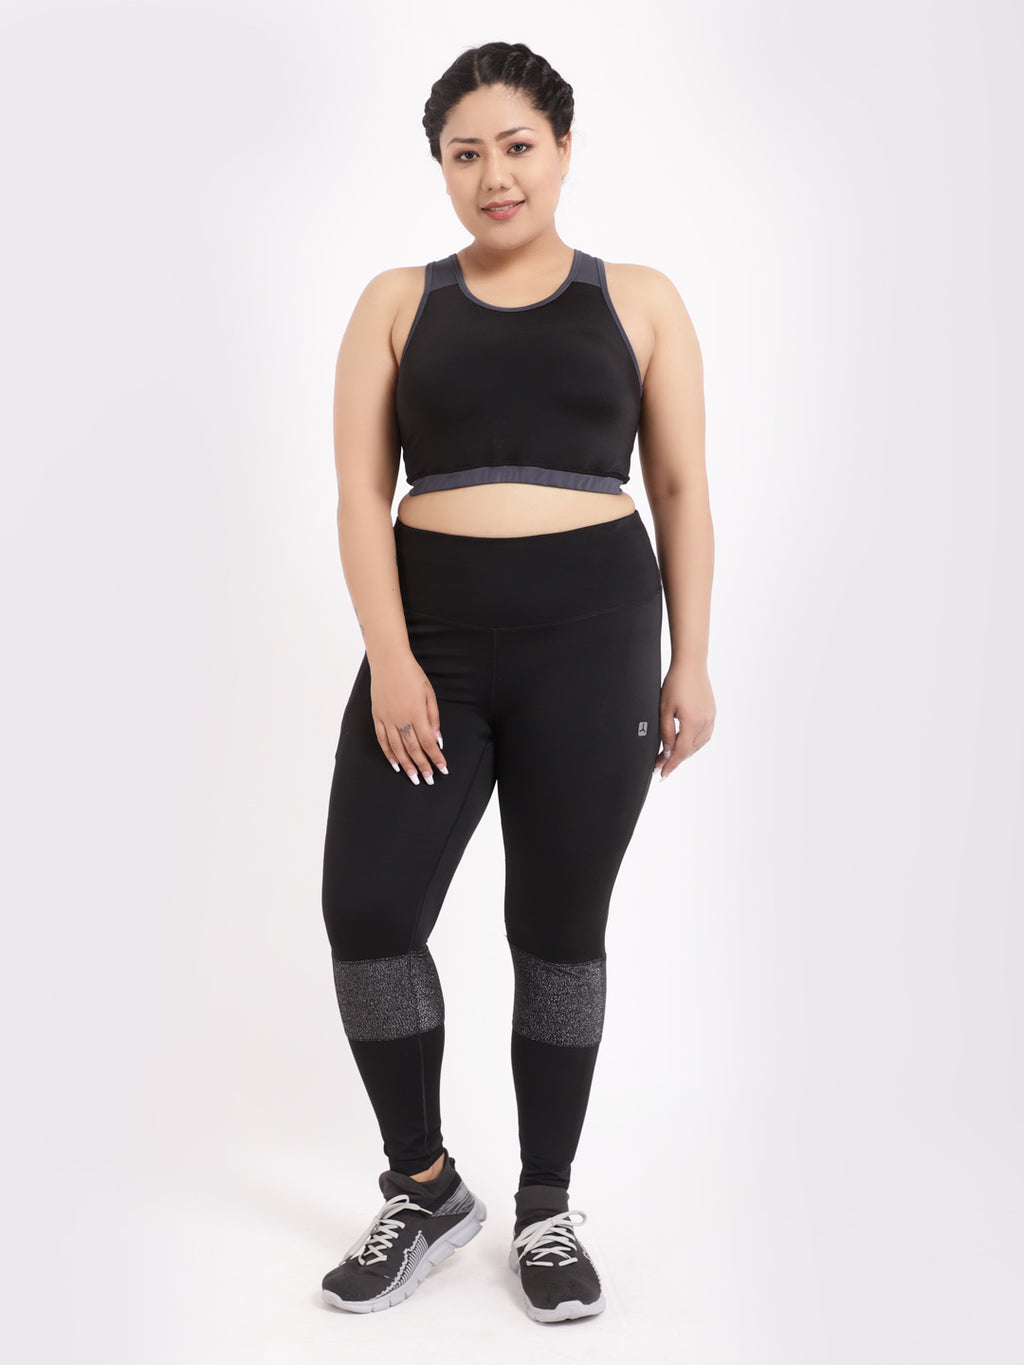 Black Shimmer Tres Chic Leggings